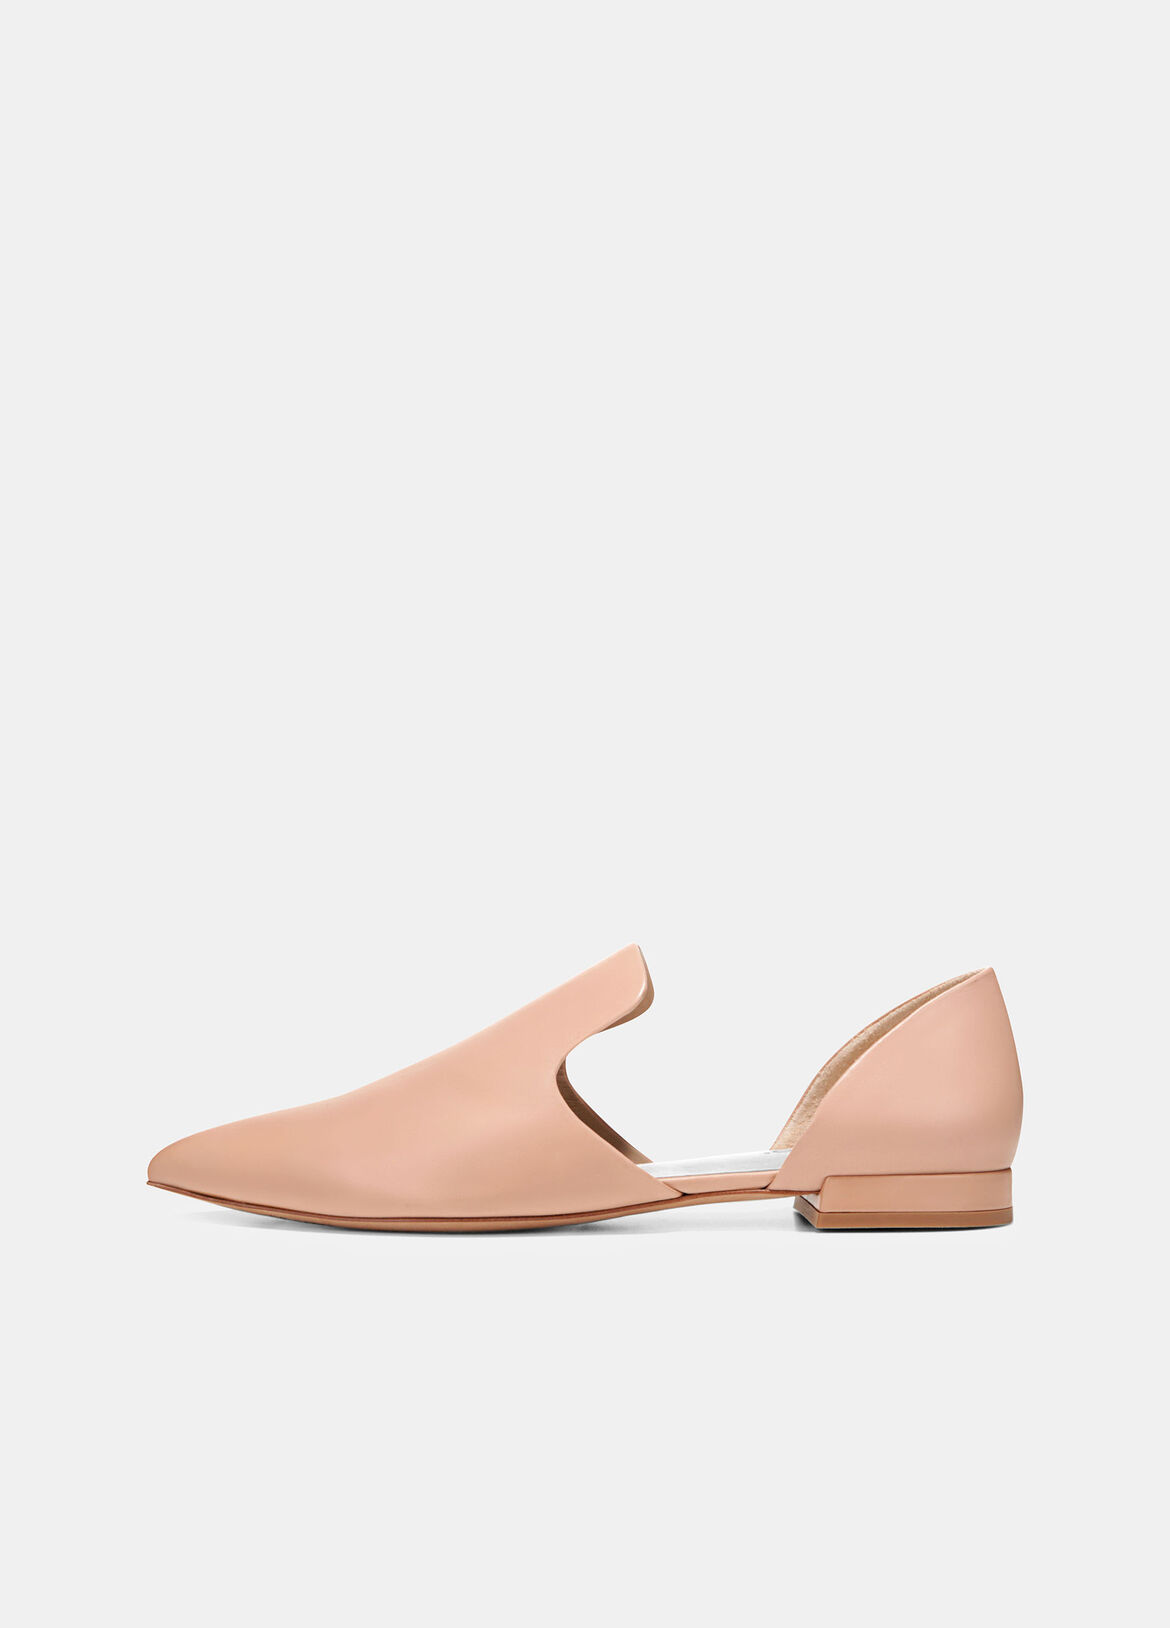 Crafted in Italy, these flats have a modern d'Orsay silhouette in smooth leather. The pointed toe and slight heel give them a sophisticated look and feel.